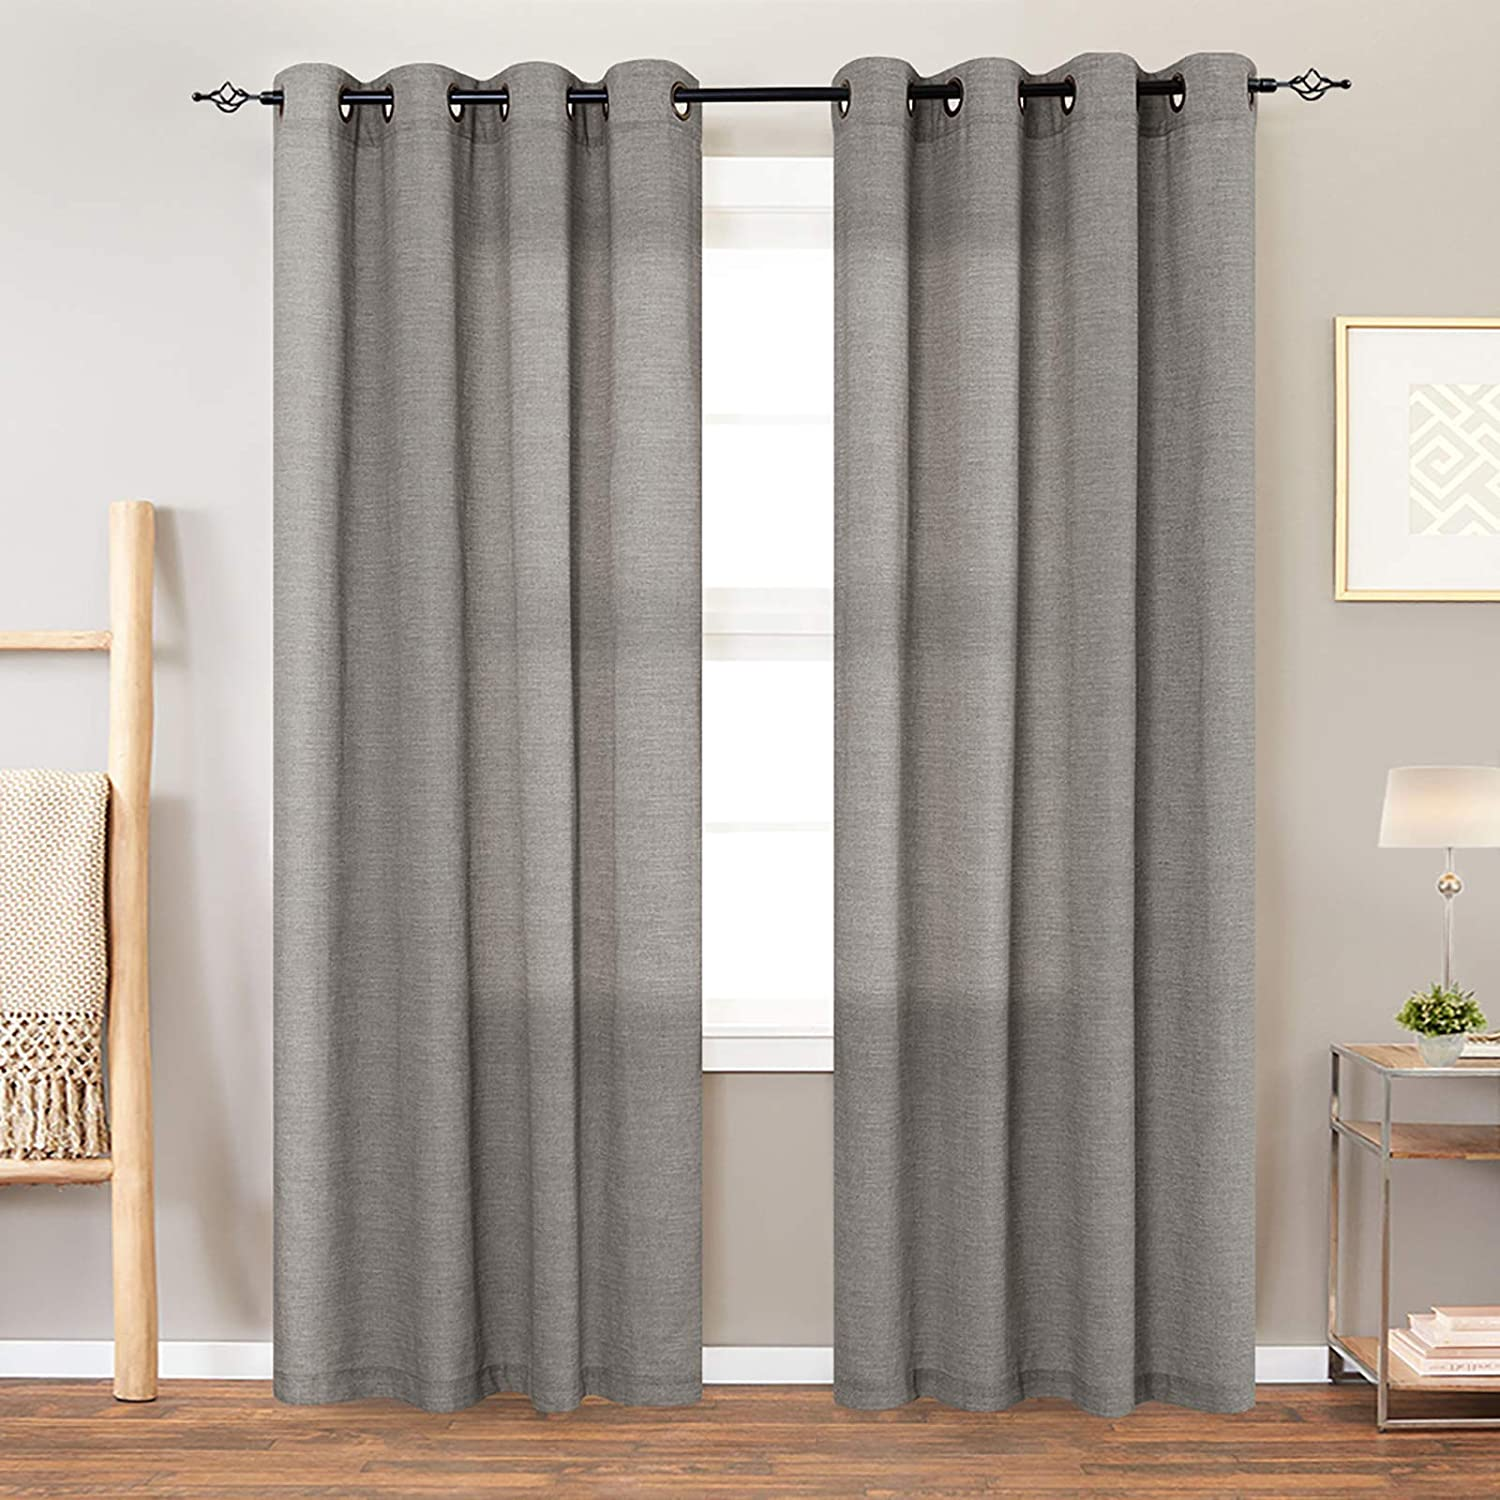 jinchan Linen Textured Curtains for Living Room Grommet Top Window Treatment Set for Bedroom 2 Panels 95 inches Long Charcoal Grey